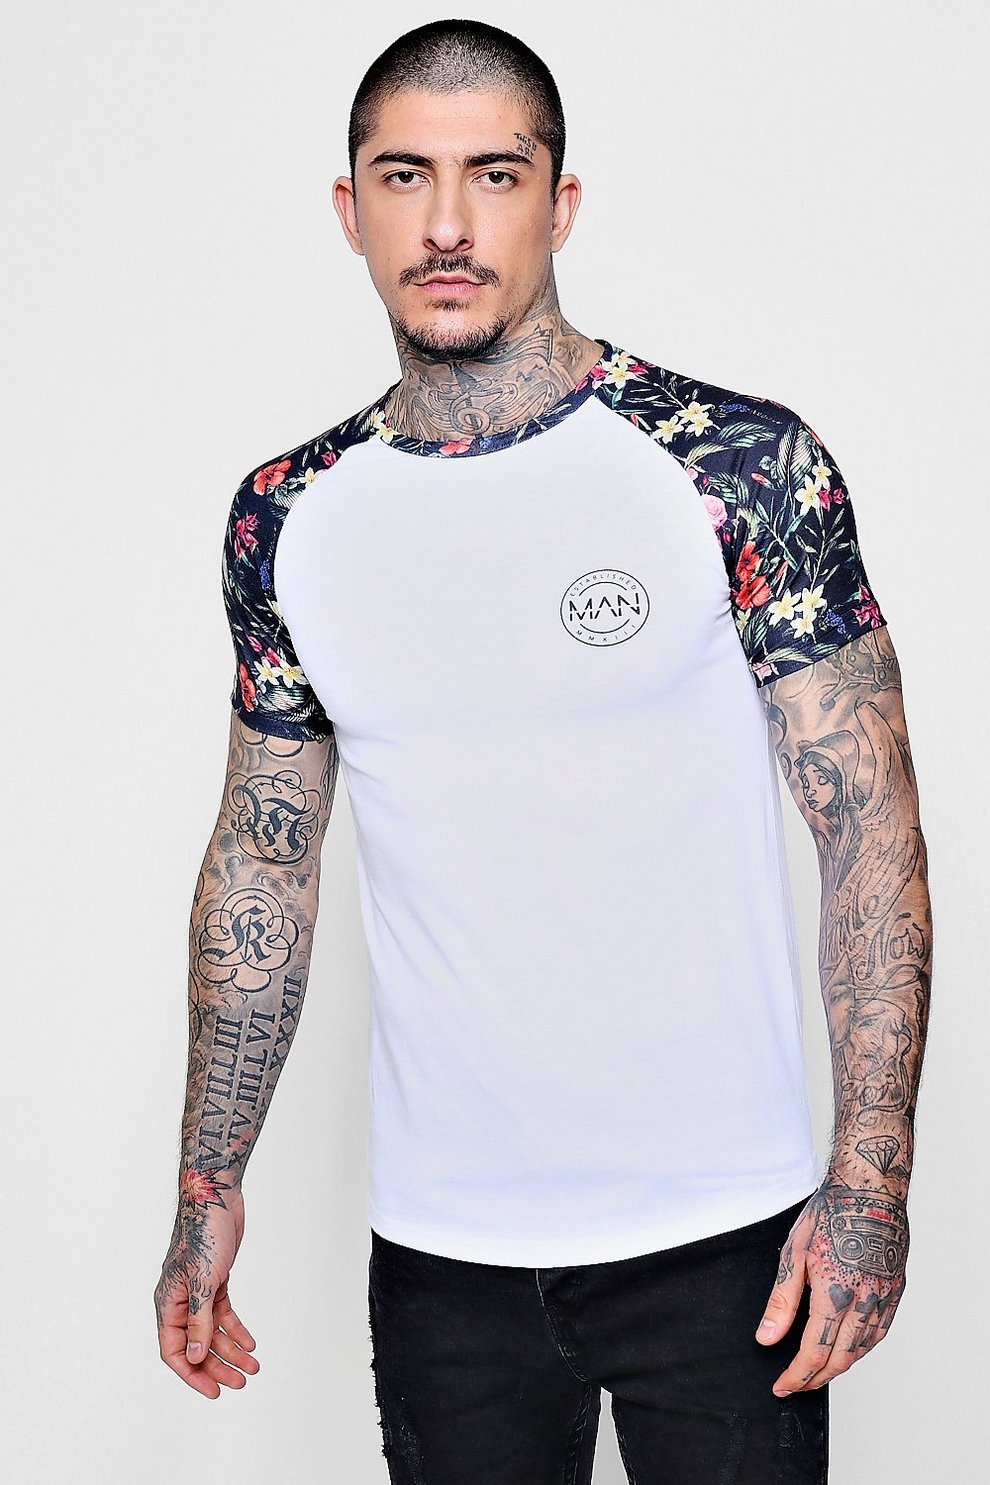 dea5cdff MAN Logo Floral Sublimation Muscle Fit T-Shirt - boohooMAN